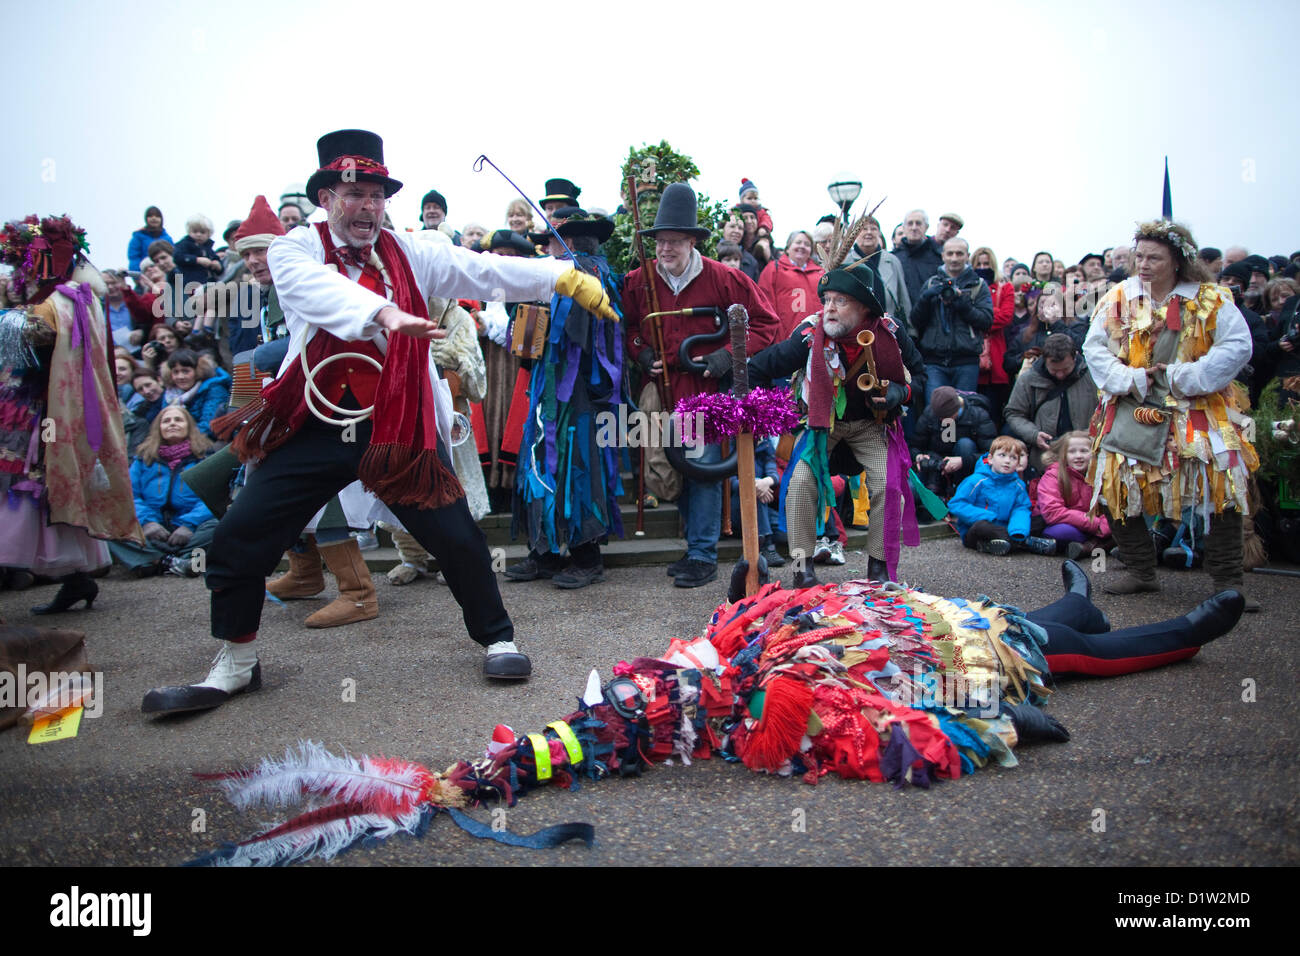 Sunday January 6th 2013, London, UK.  The Holly Man, Green Man and Bankside Mummers arrive on the Bankside, near - Stock Image